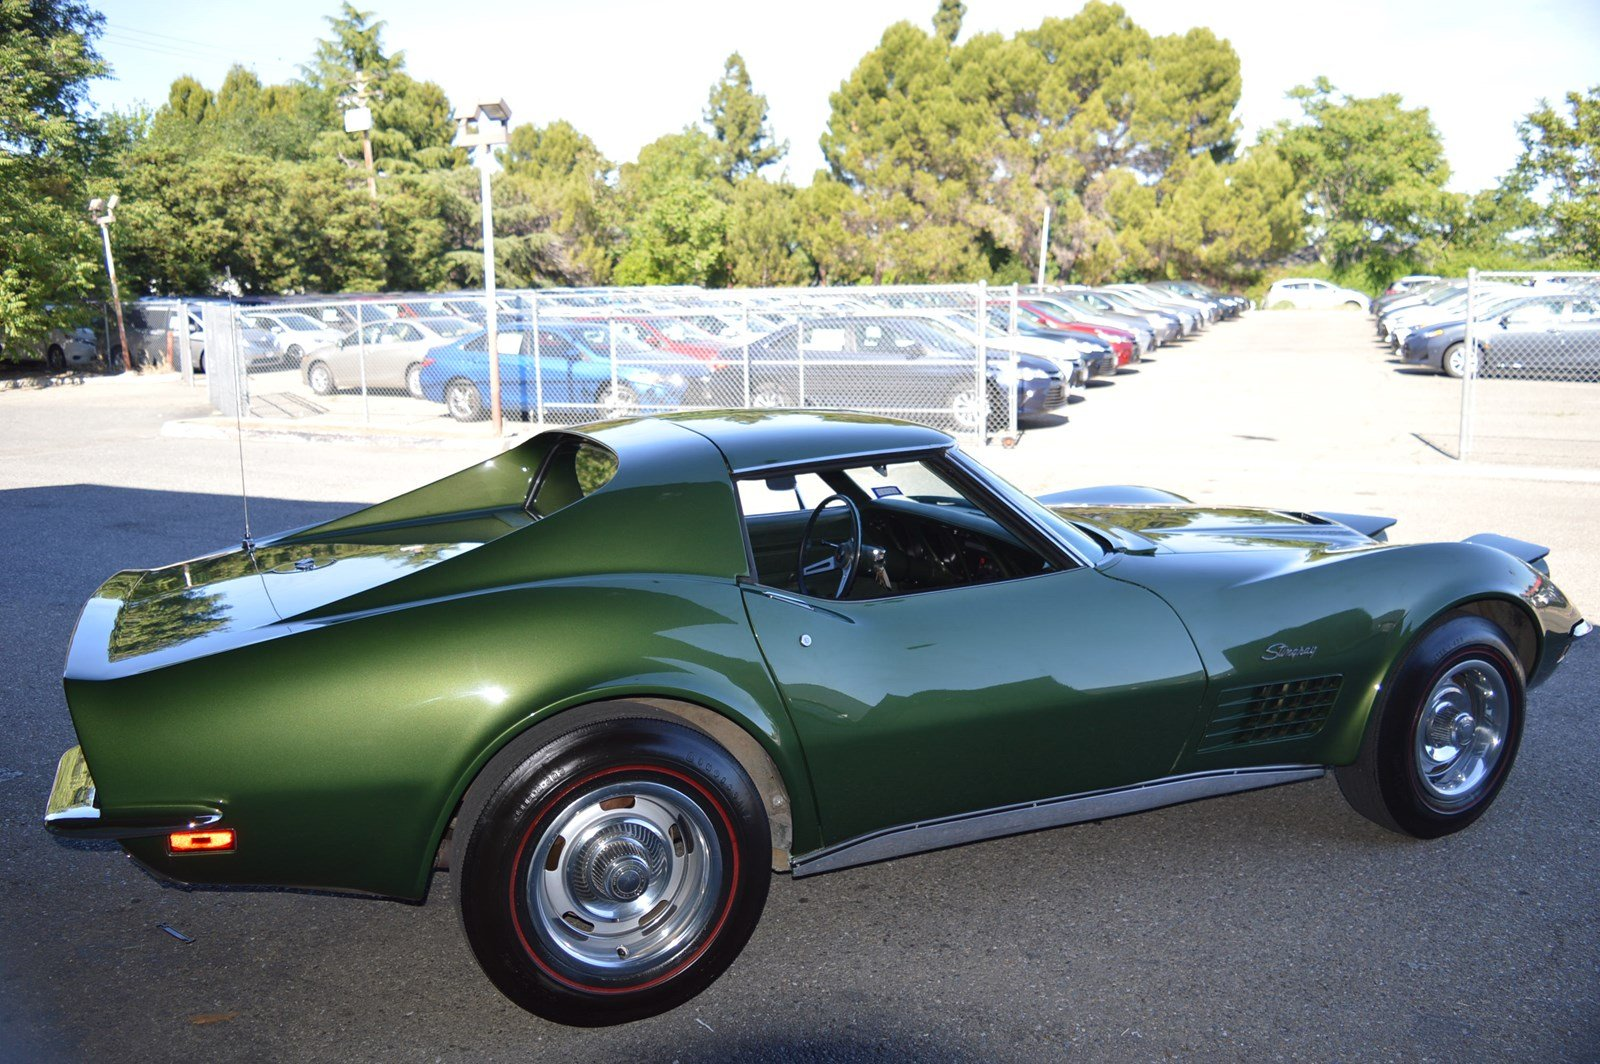 pre owned 1970 chevrolet corvette coupe in san jose am4047 rh stevenscreektoyota com 1970 corvette owners manual download 1972 Corvette